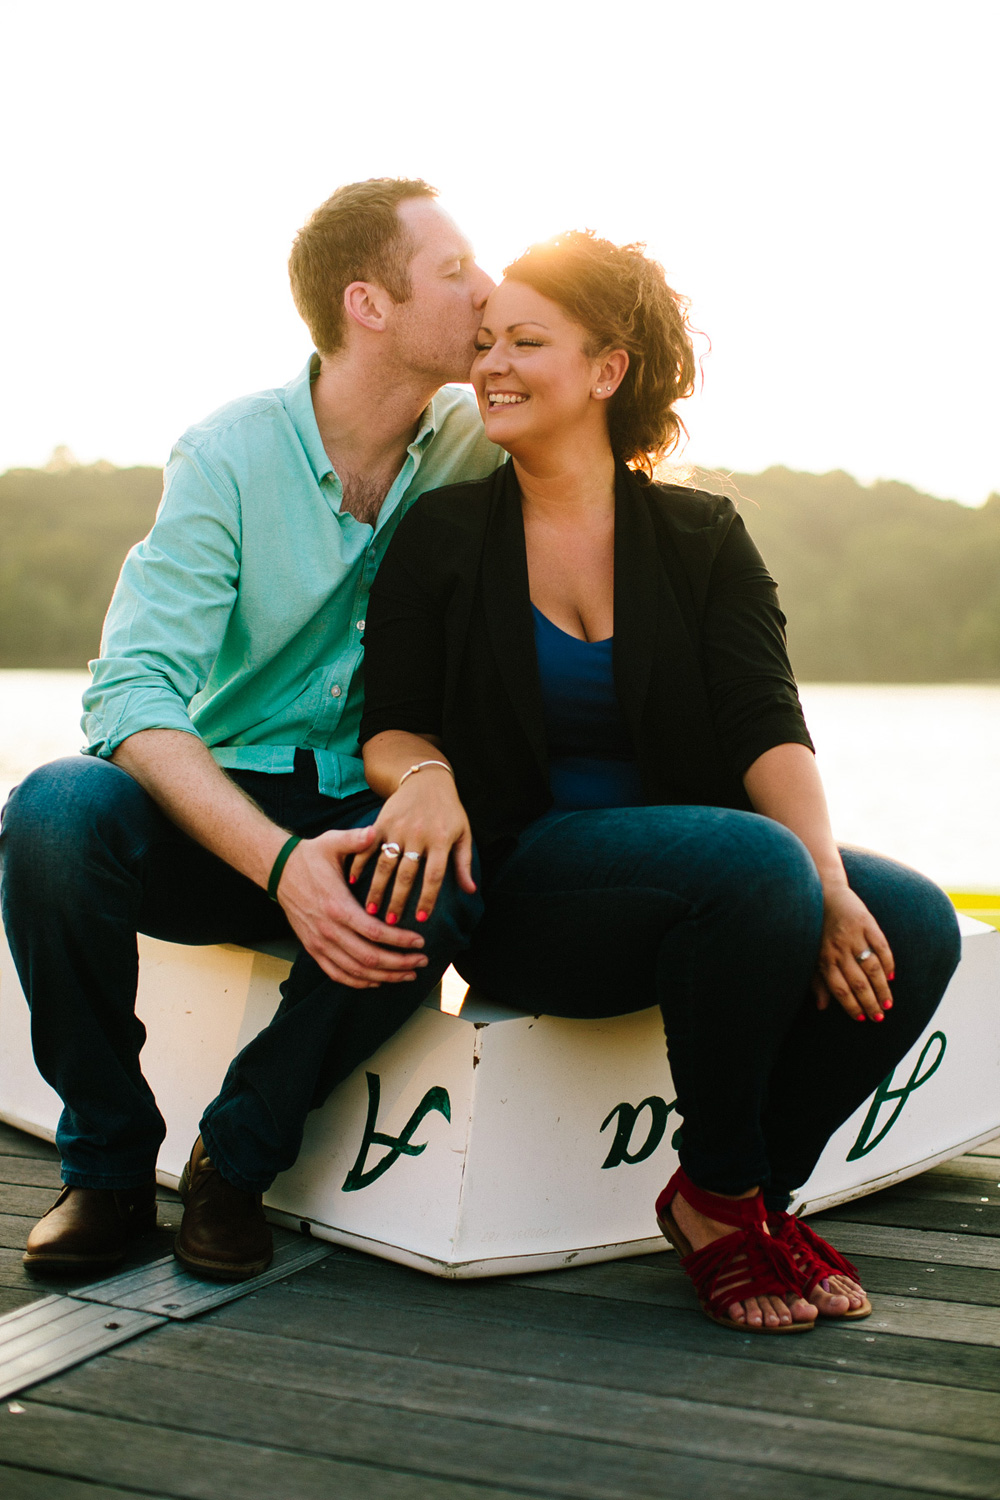 008-jamaica-plain-engagement-session.jpg